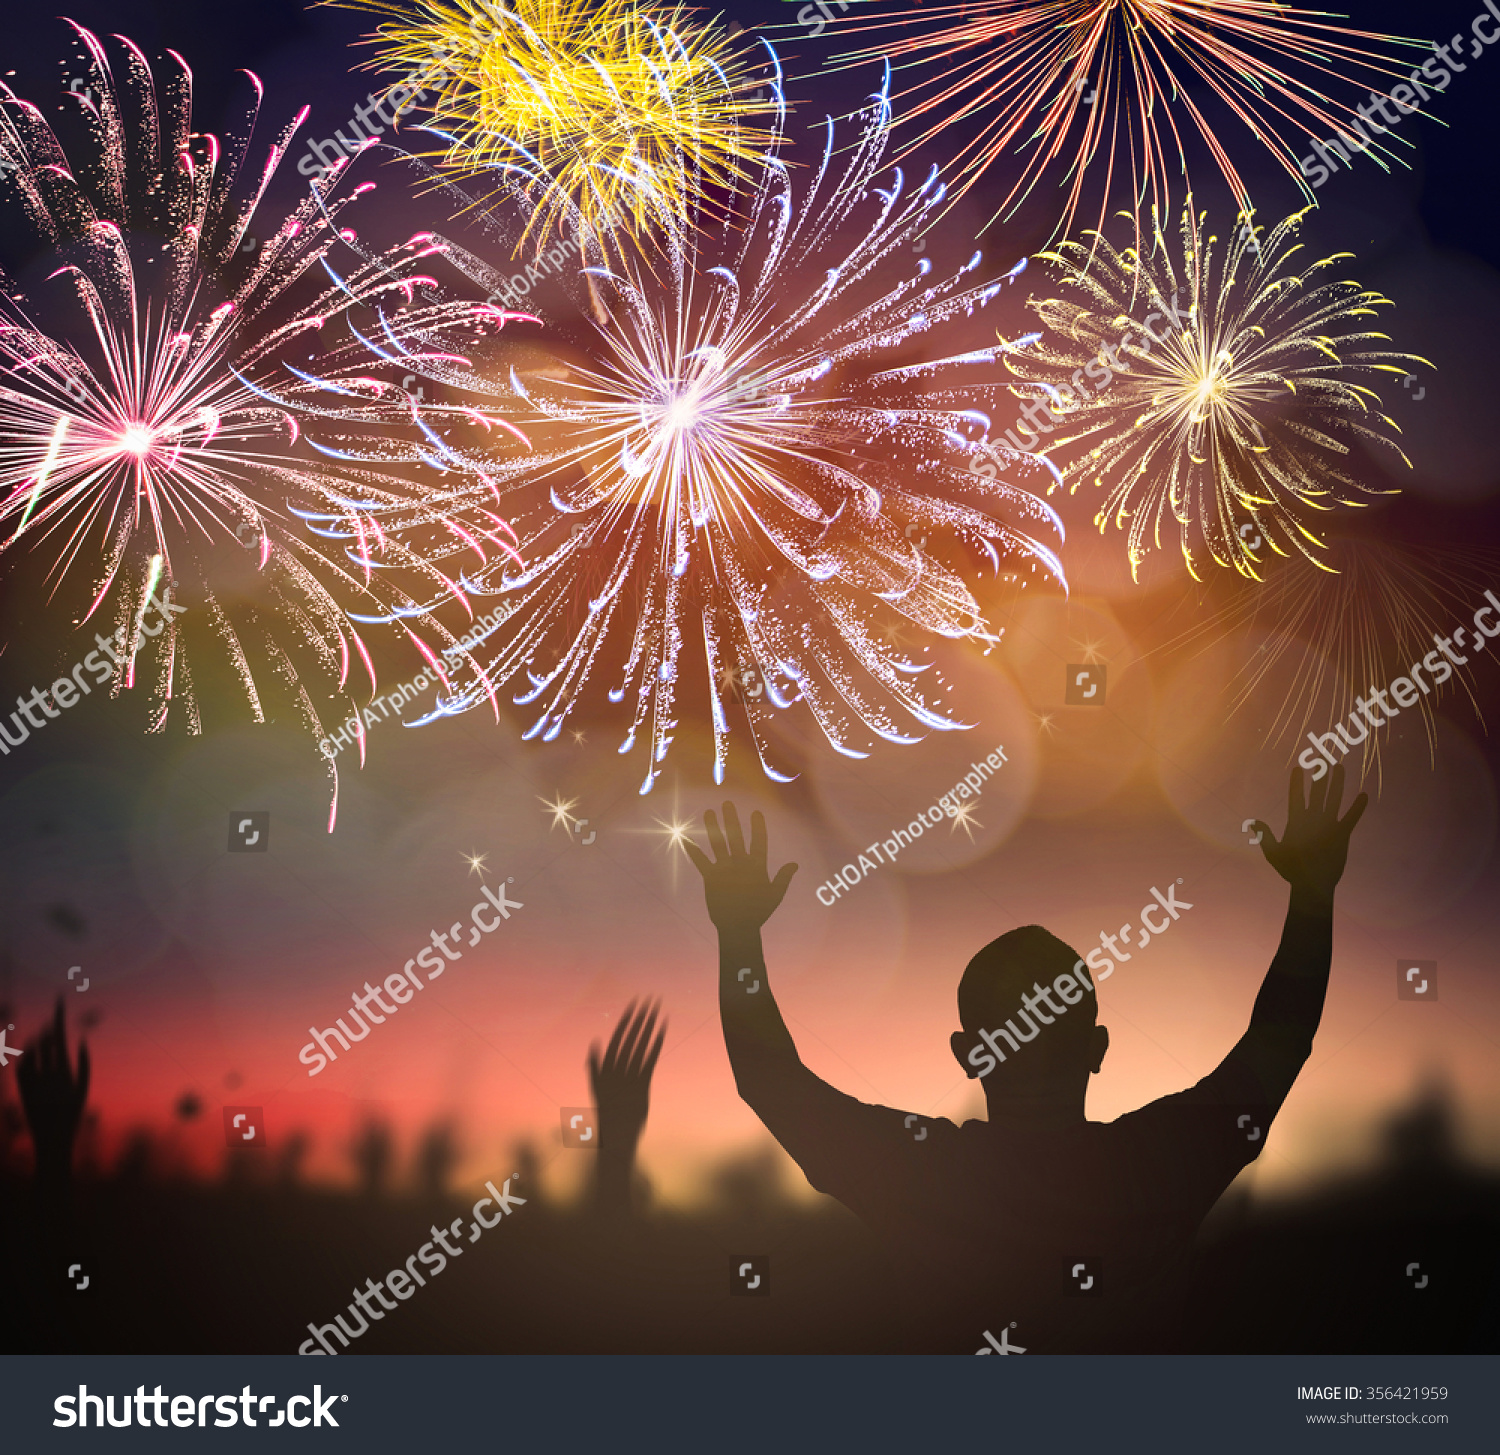 happy new year 2019 concept people raised hands to worship god on fireworks with night